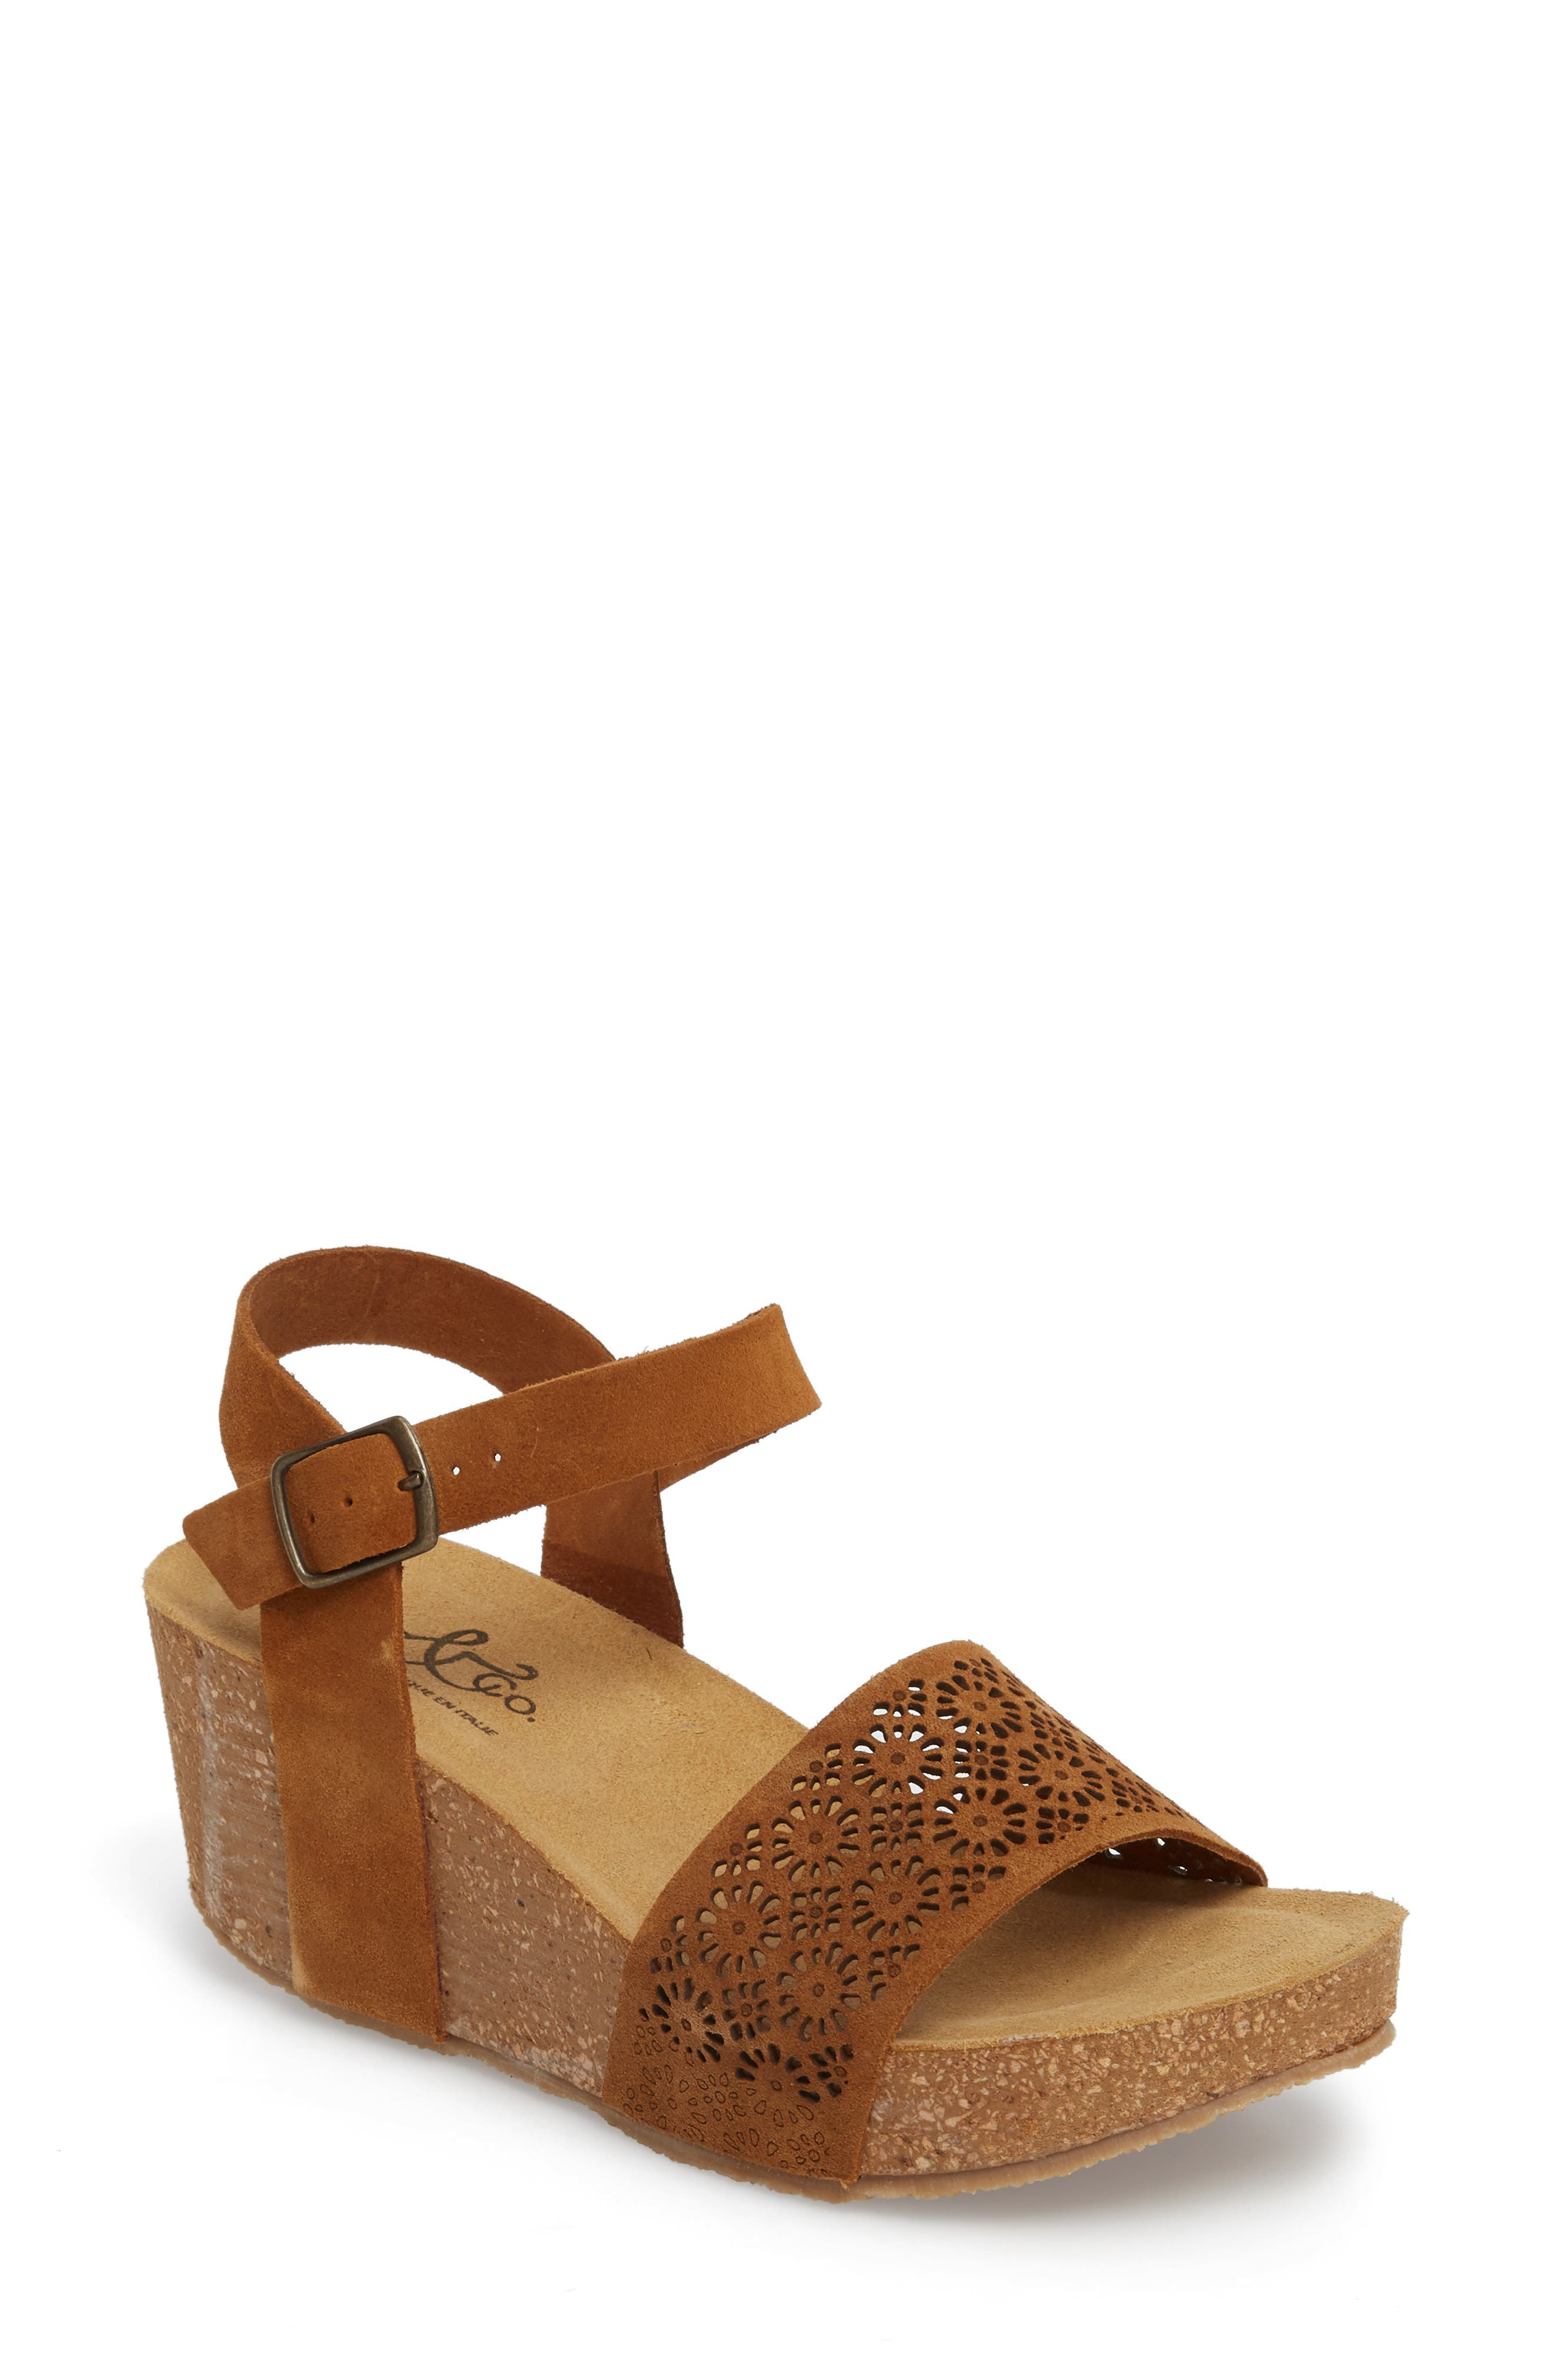 Bos. & Co. Lolo Platform Wedge Sandal - Brown